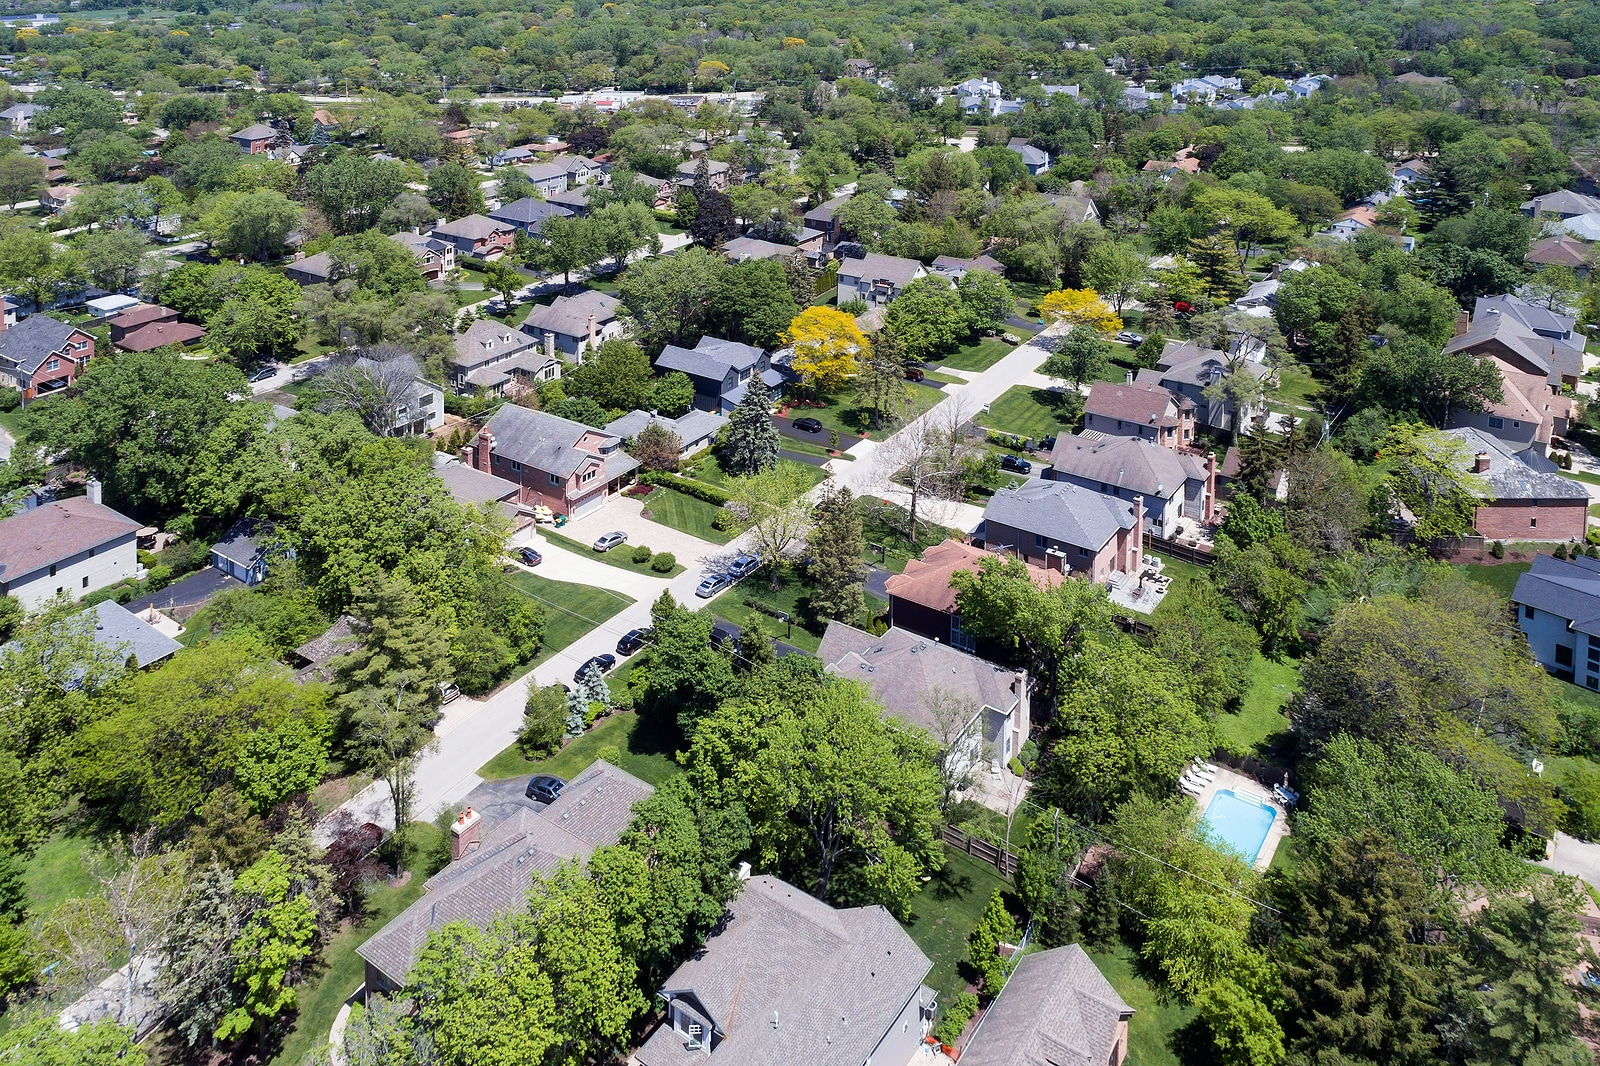 Aerial view of a neighborhood with mature trees in a